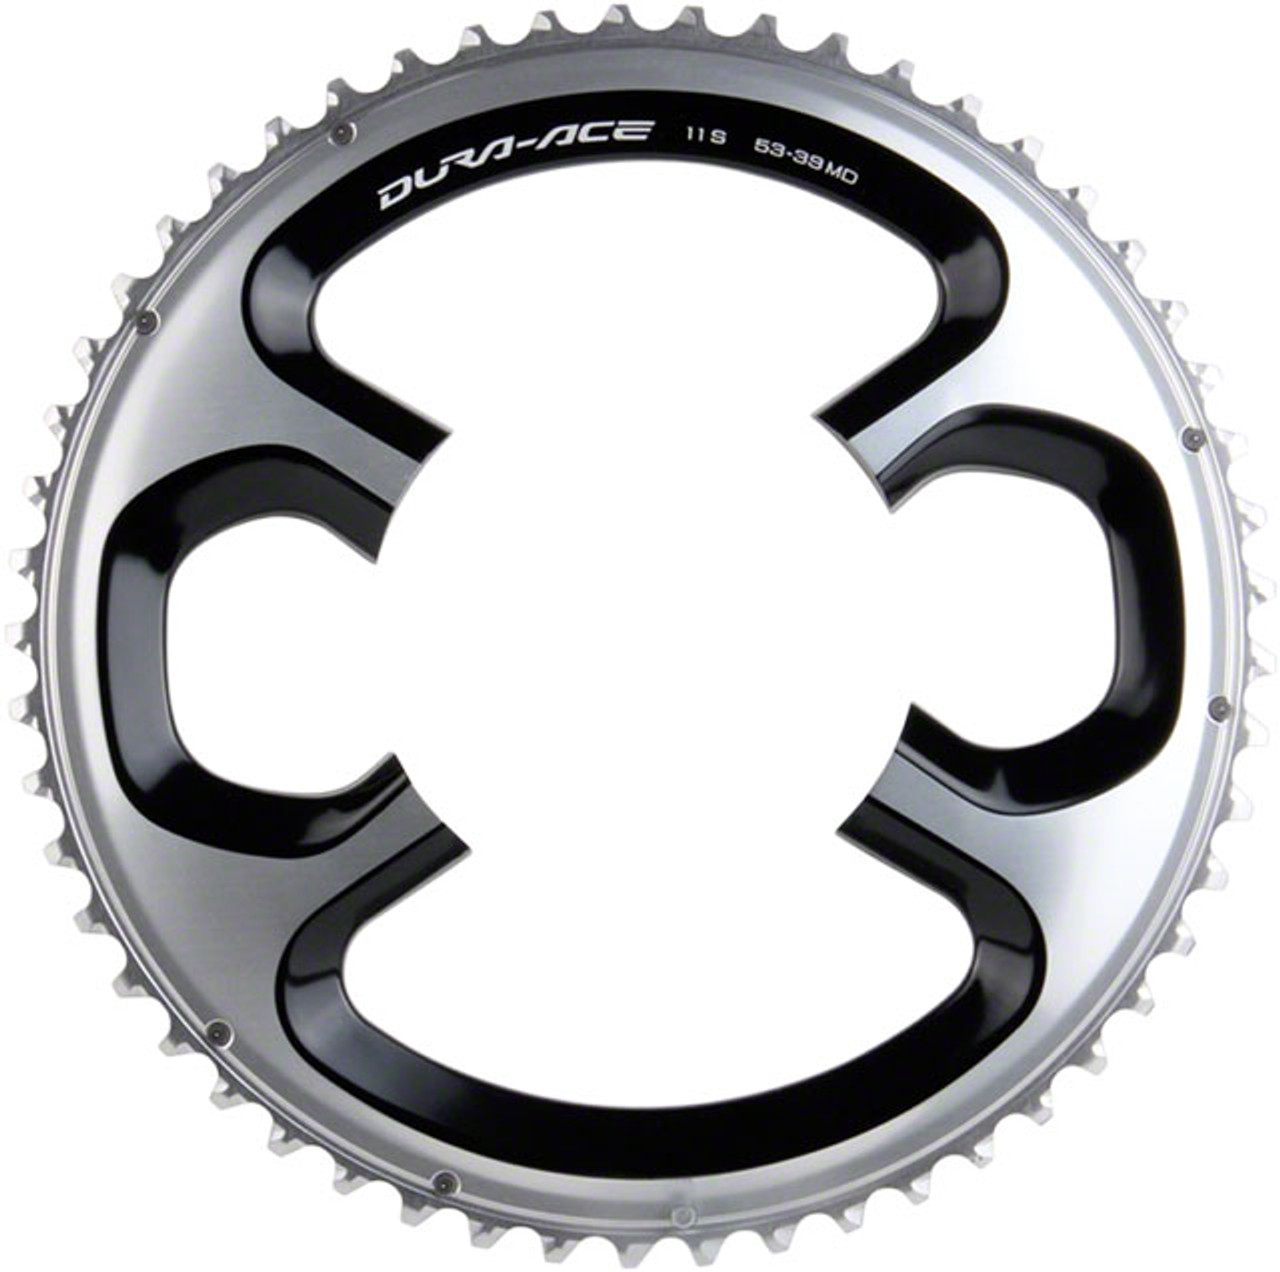 Dura Ace 9000 >> Shimano Dura Ace 9000 11 Speed Outter Chainring